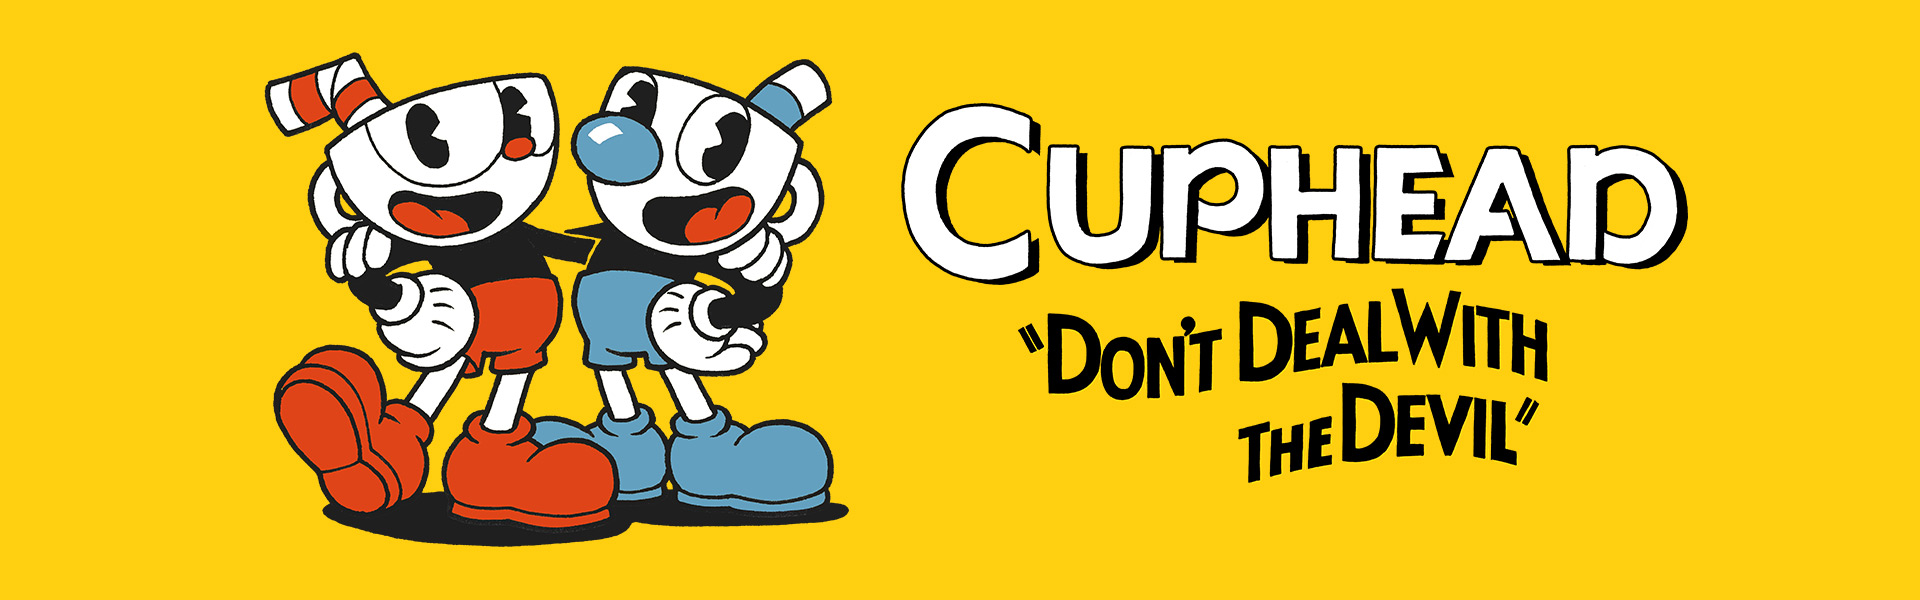 cuphead in the delicious last course, apresentação dos personagens mugman e ms. chalice do cuphead